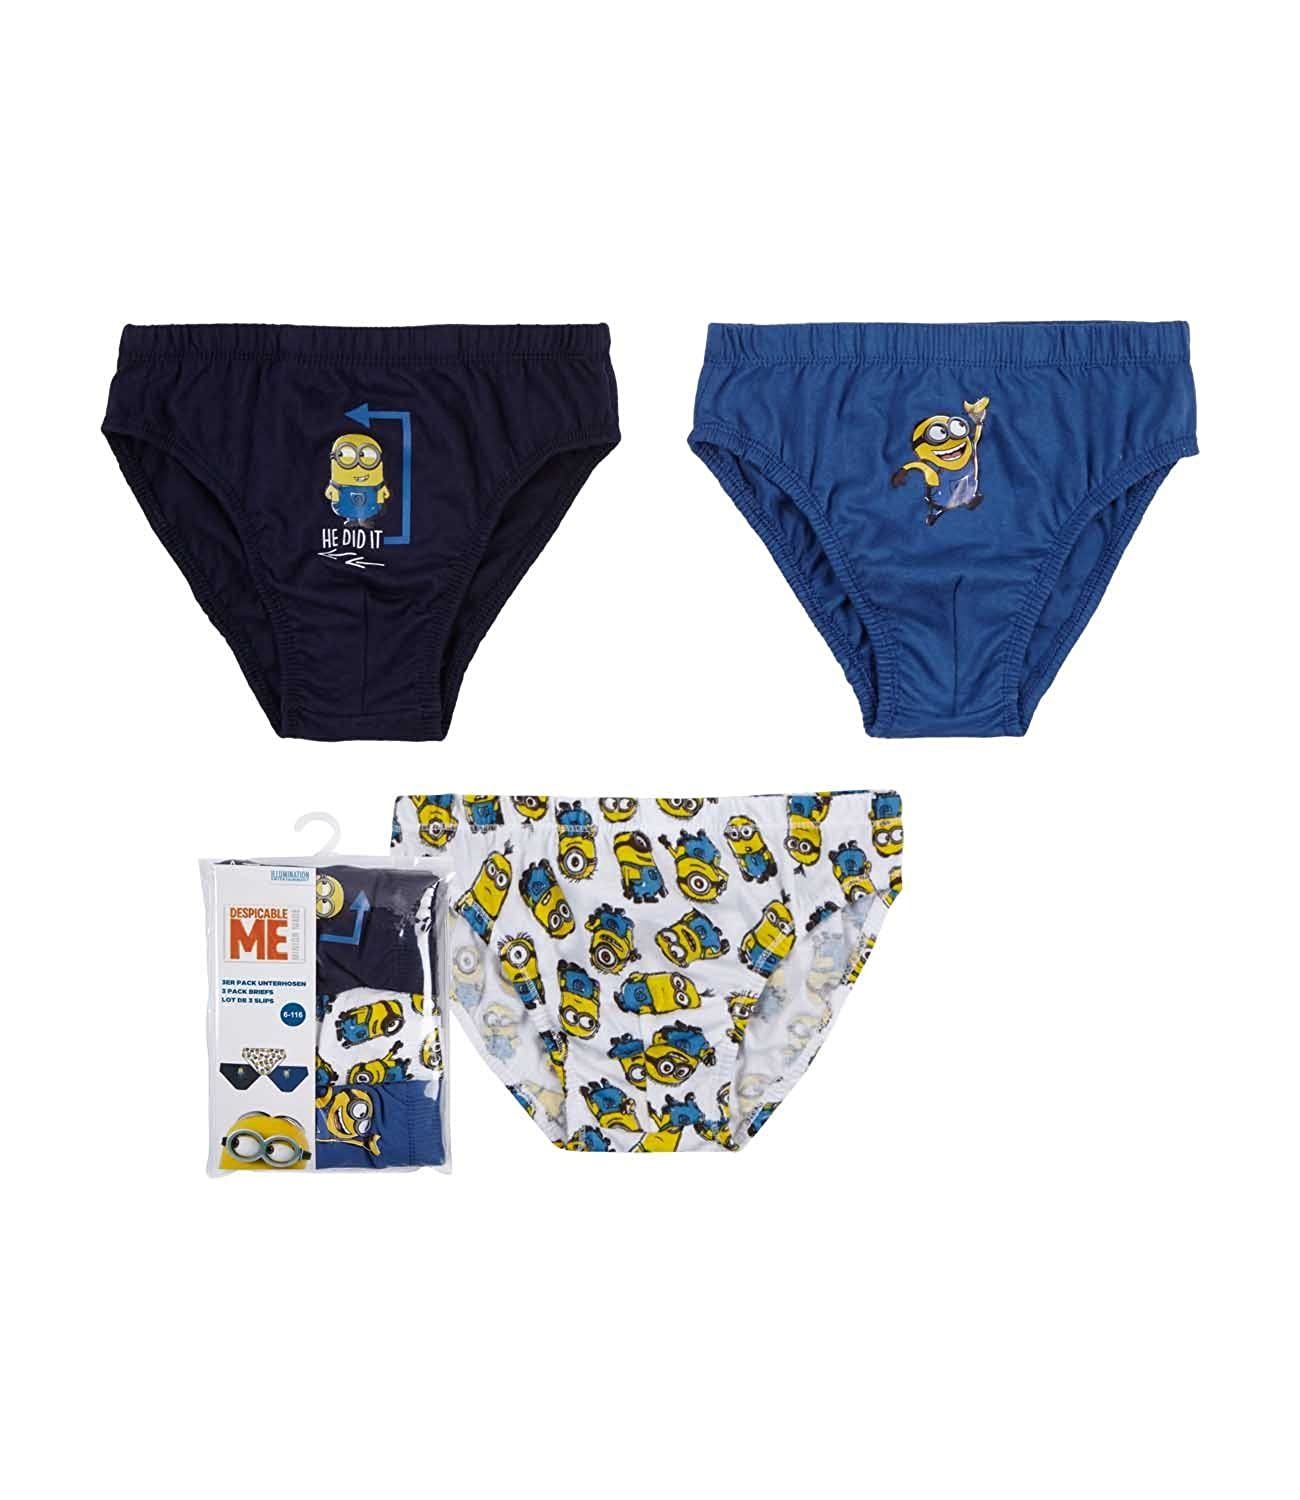 Minions Despicable Me Boys 3 pack brief - navy blue